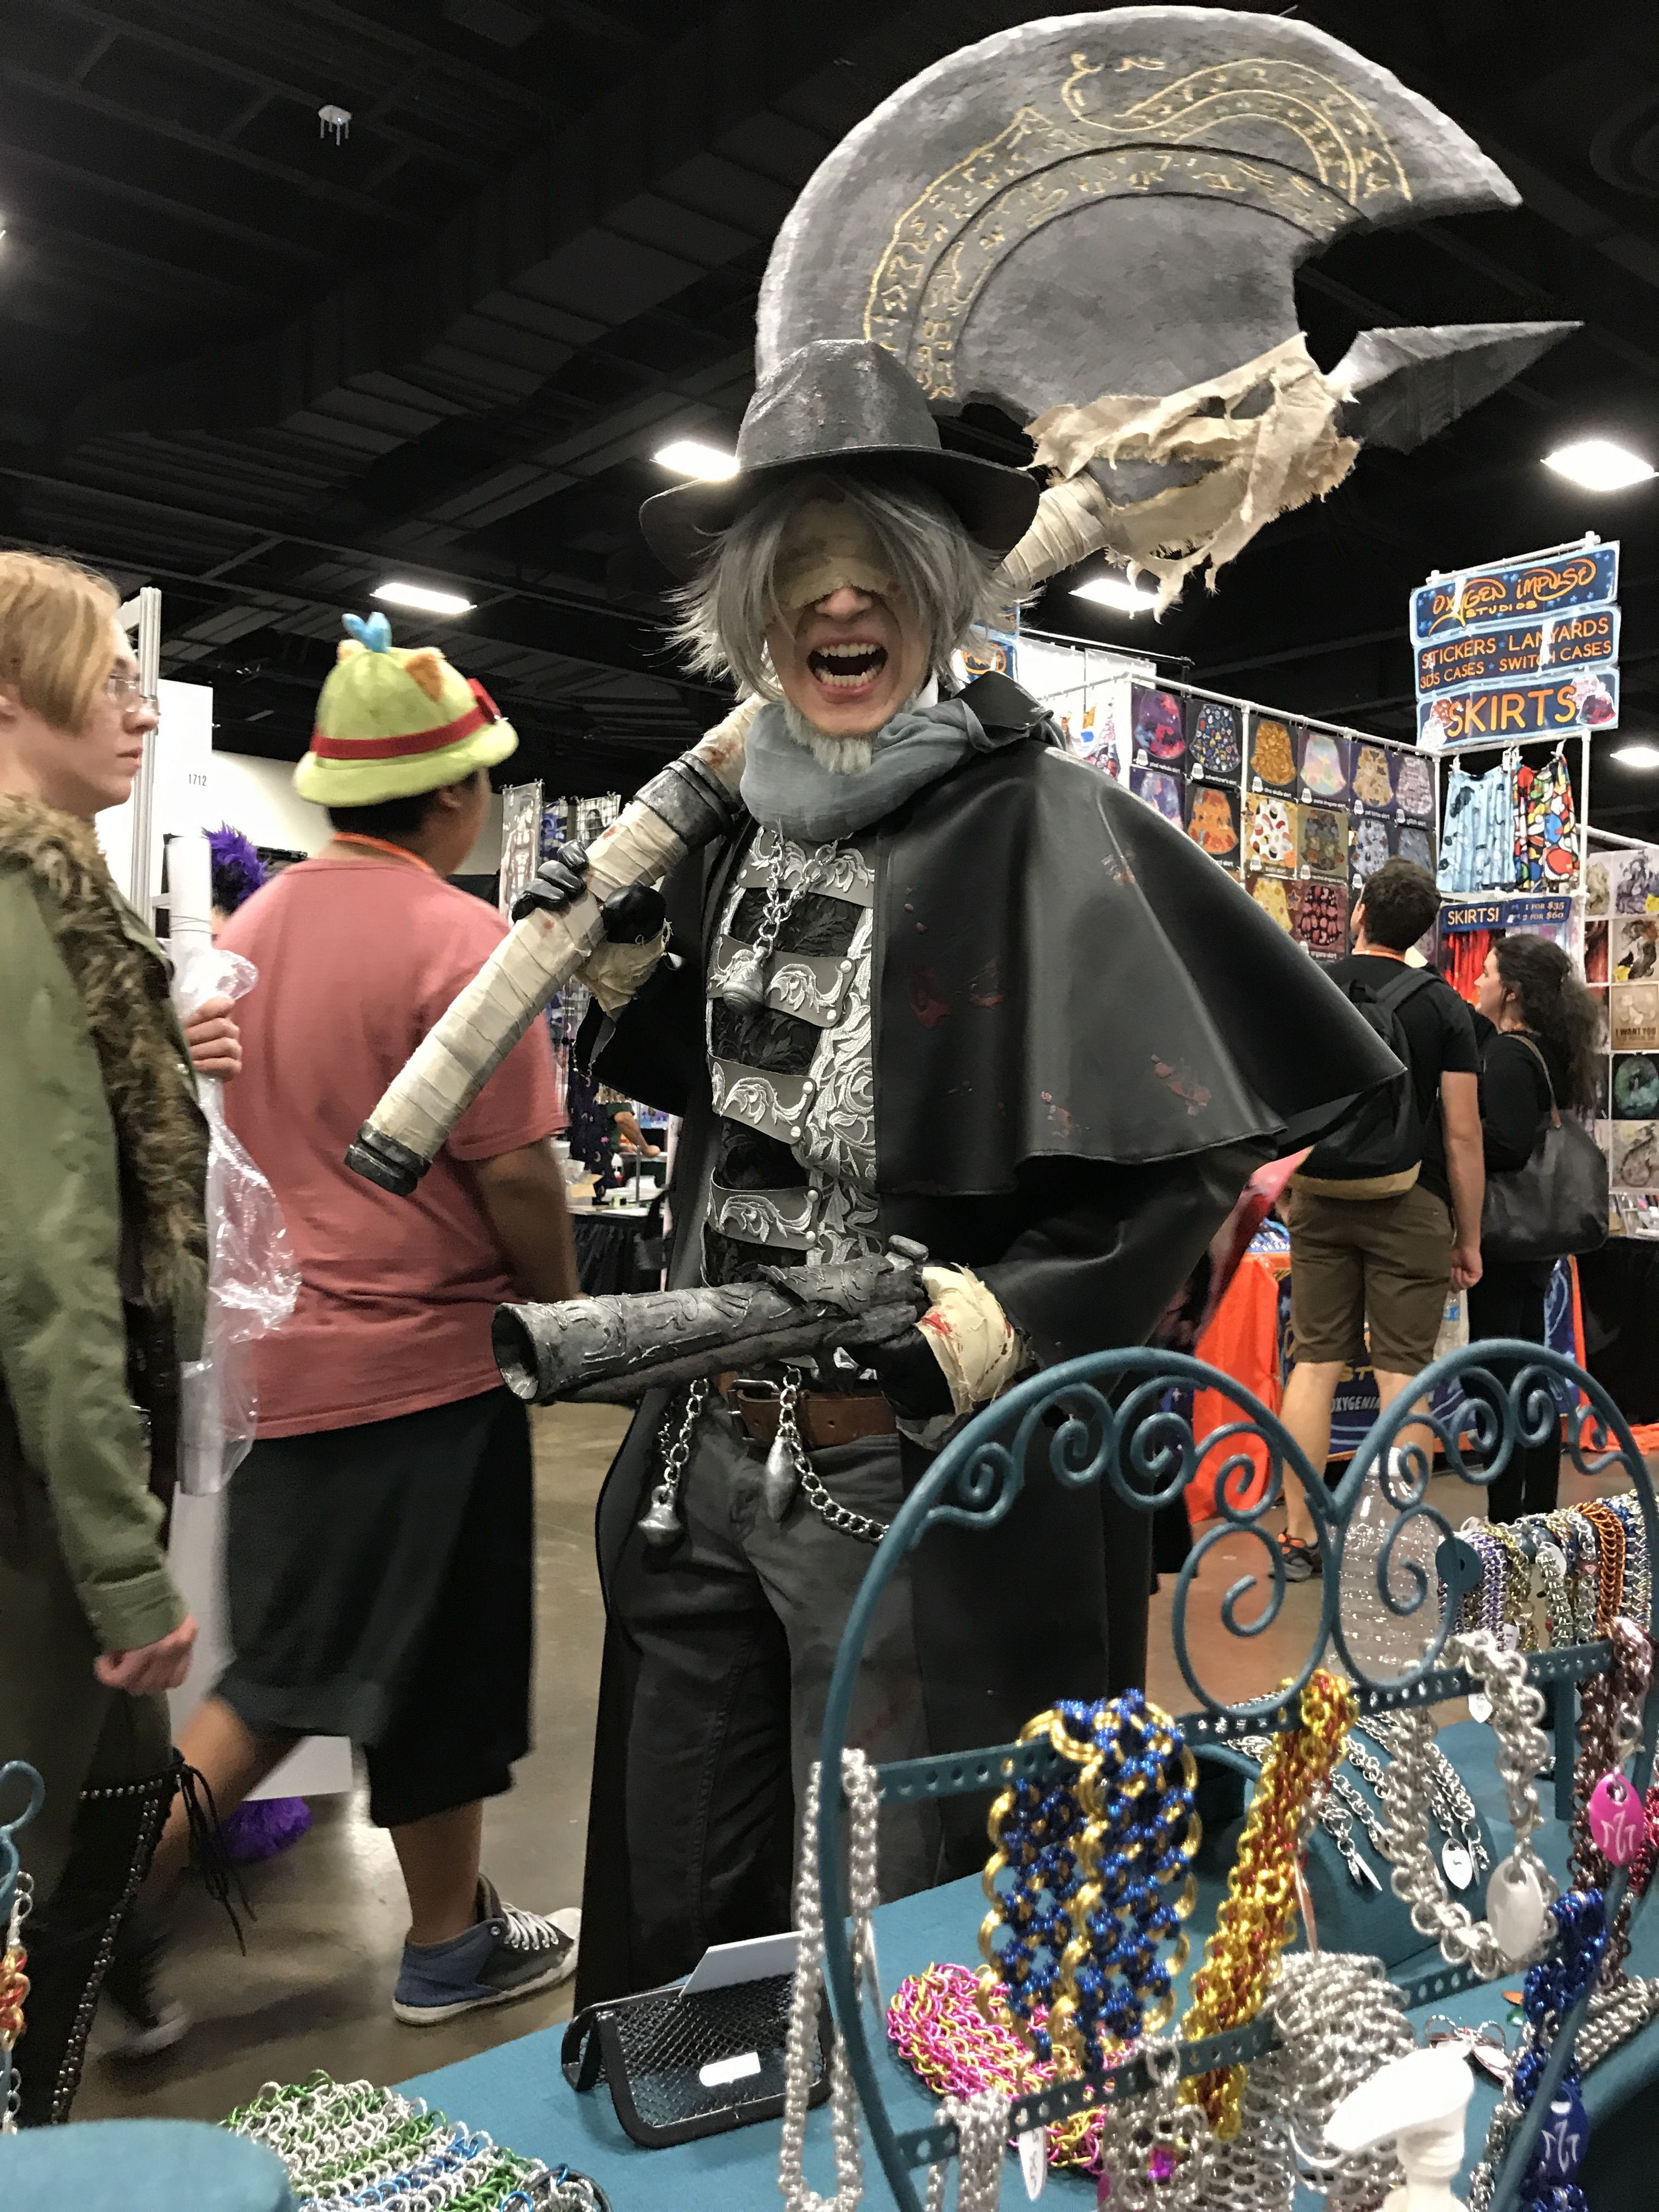 From The Game Bloodborne A Kon Anime Conventions Samurai Gear